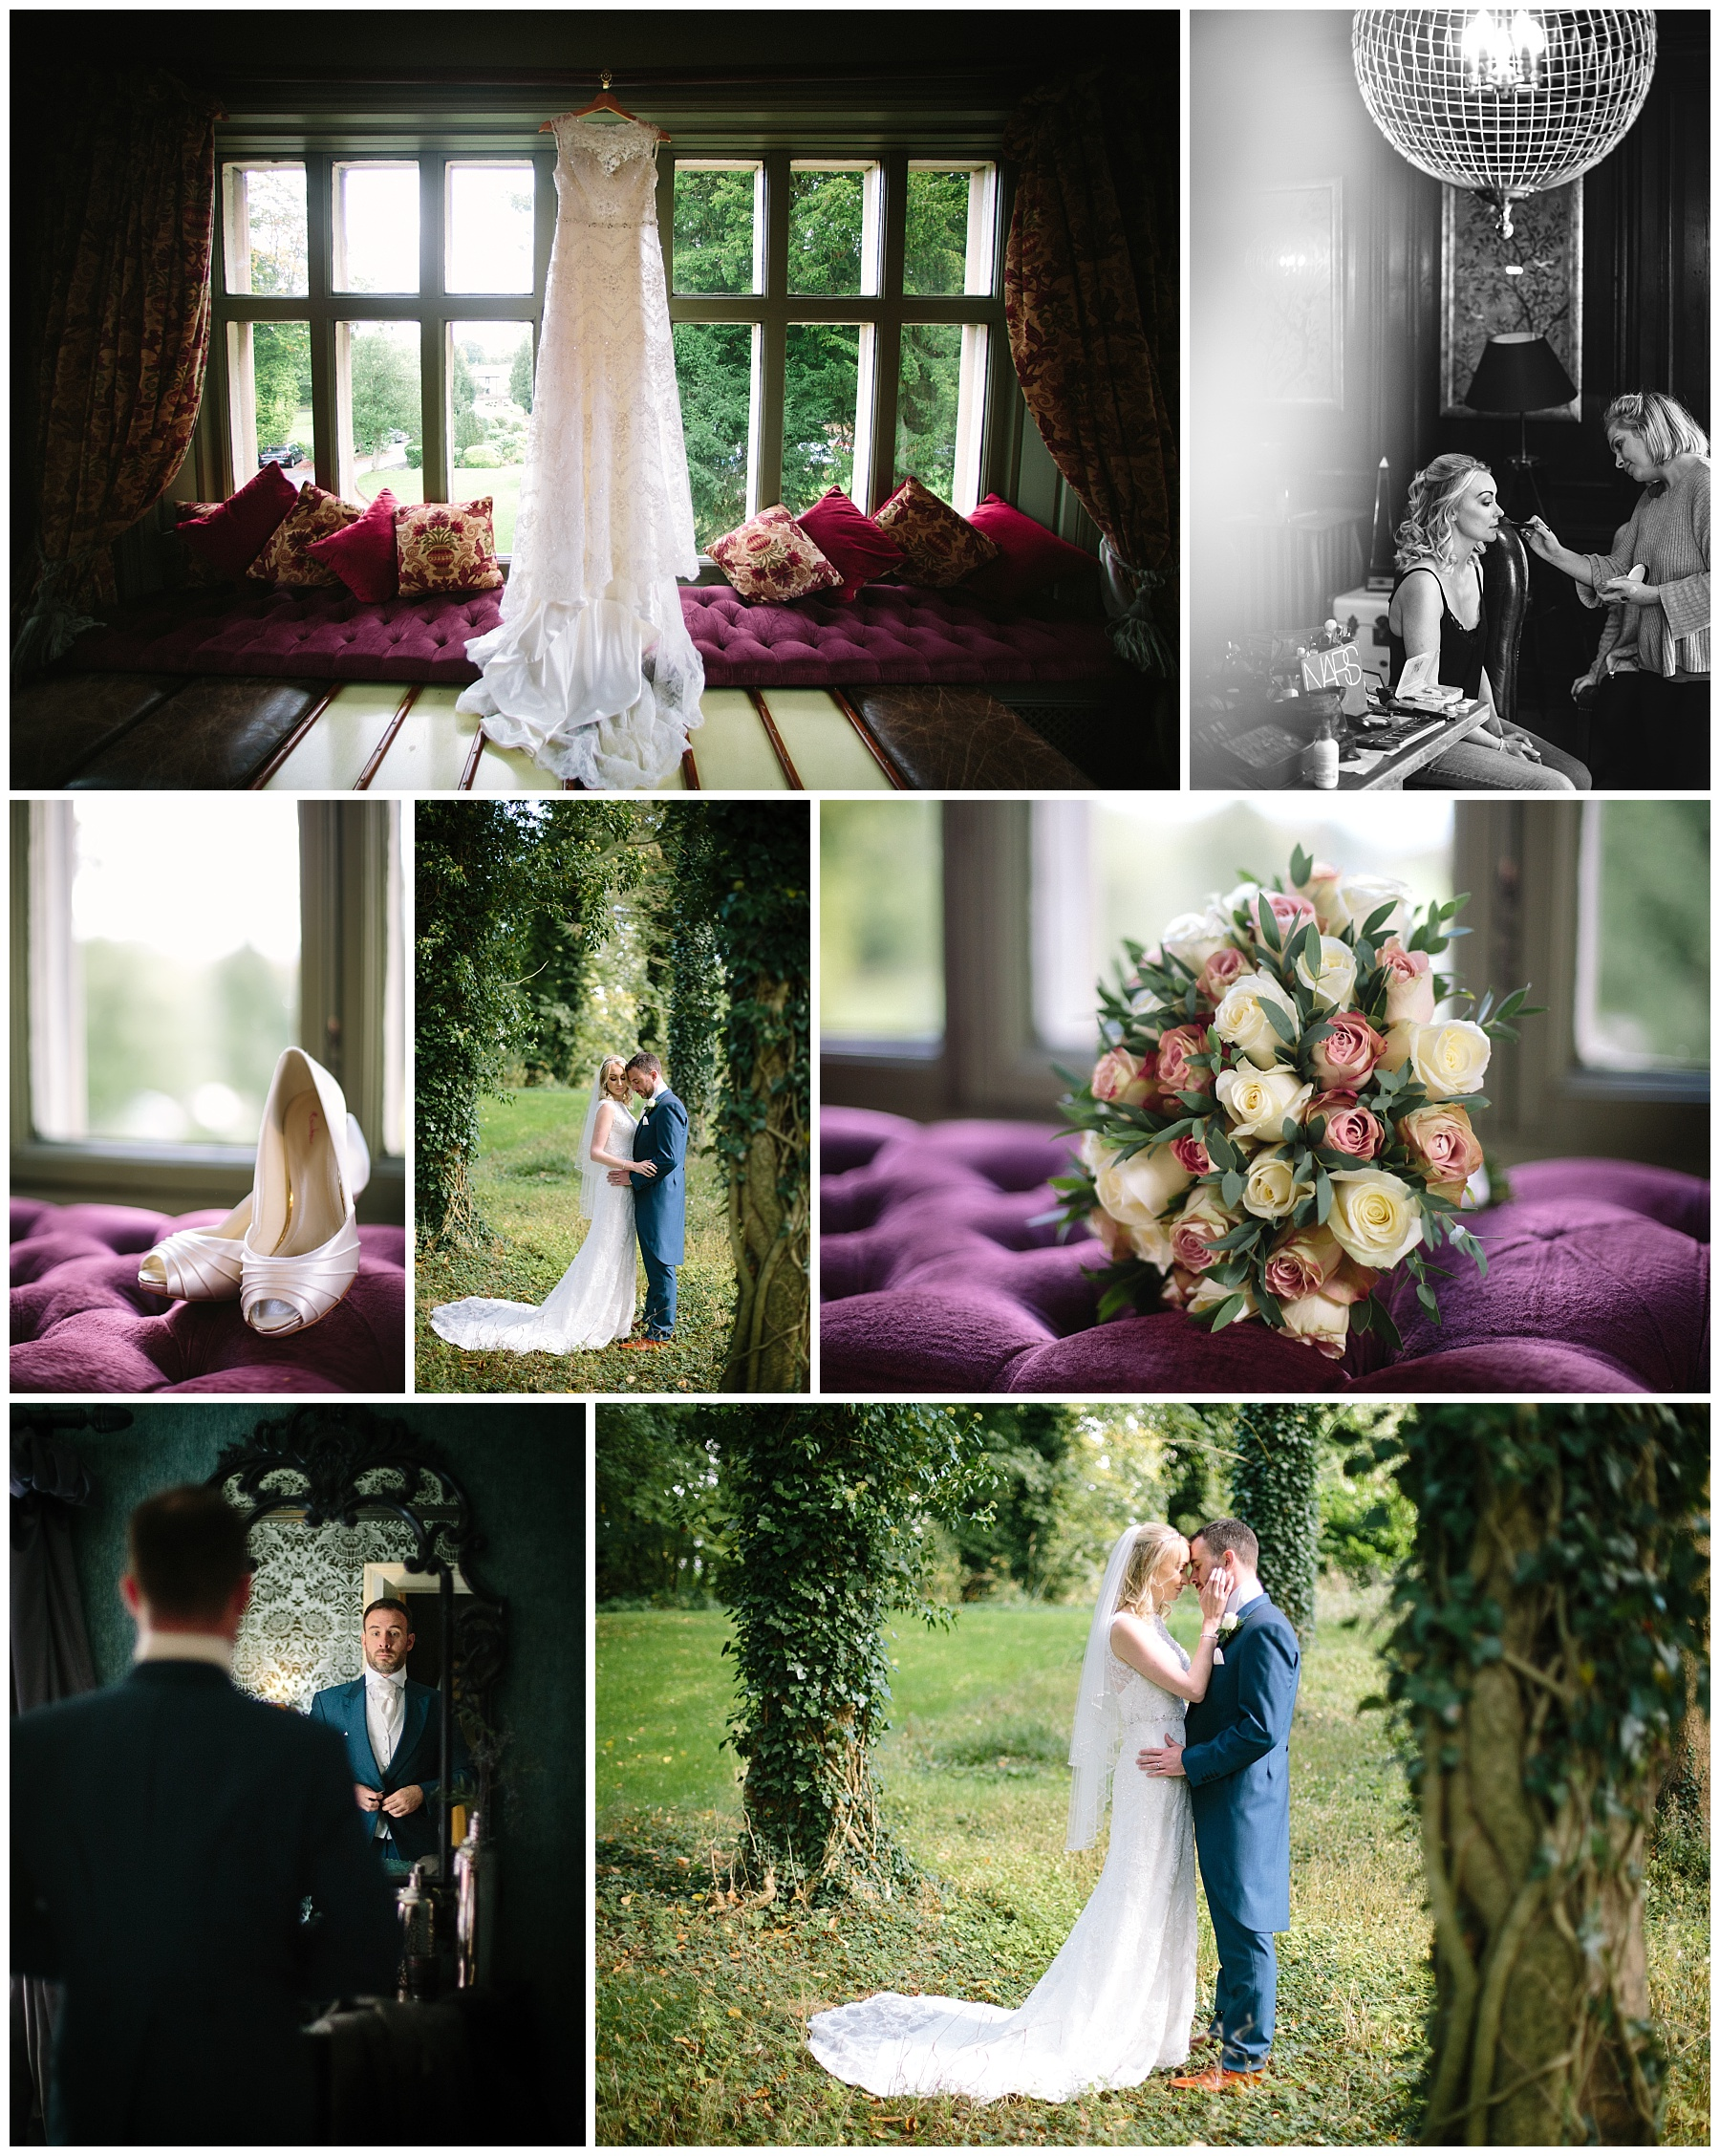 Wedding sneak peek at Mitton Hall photographs